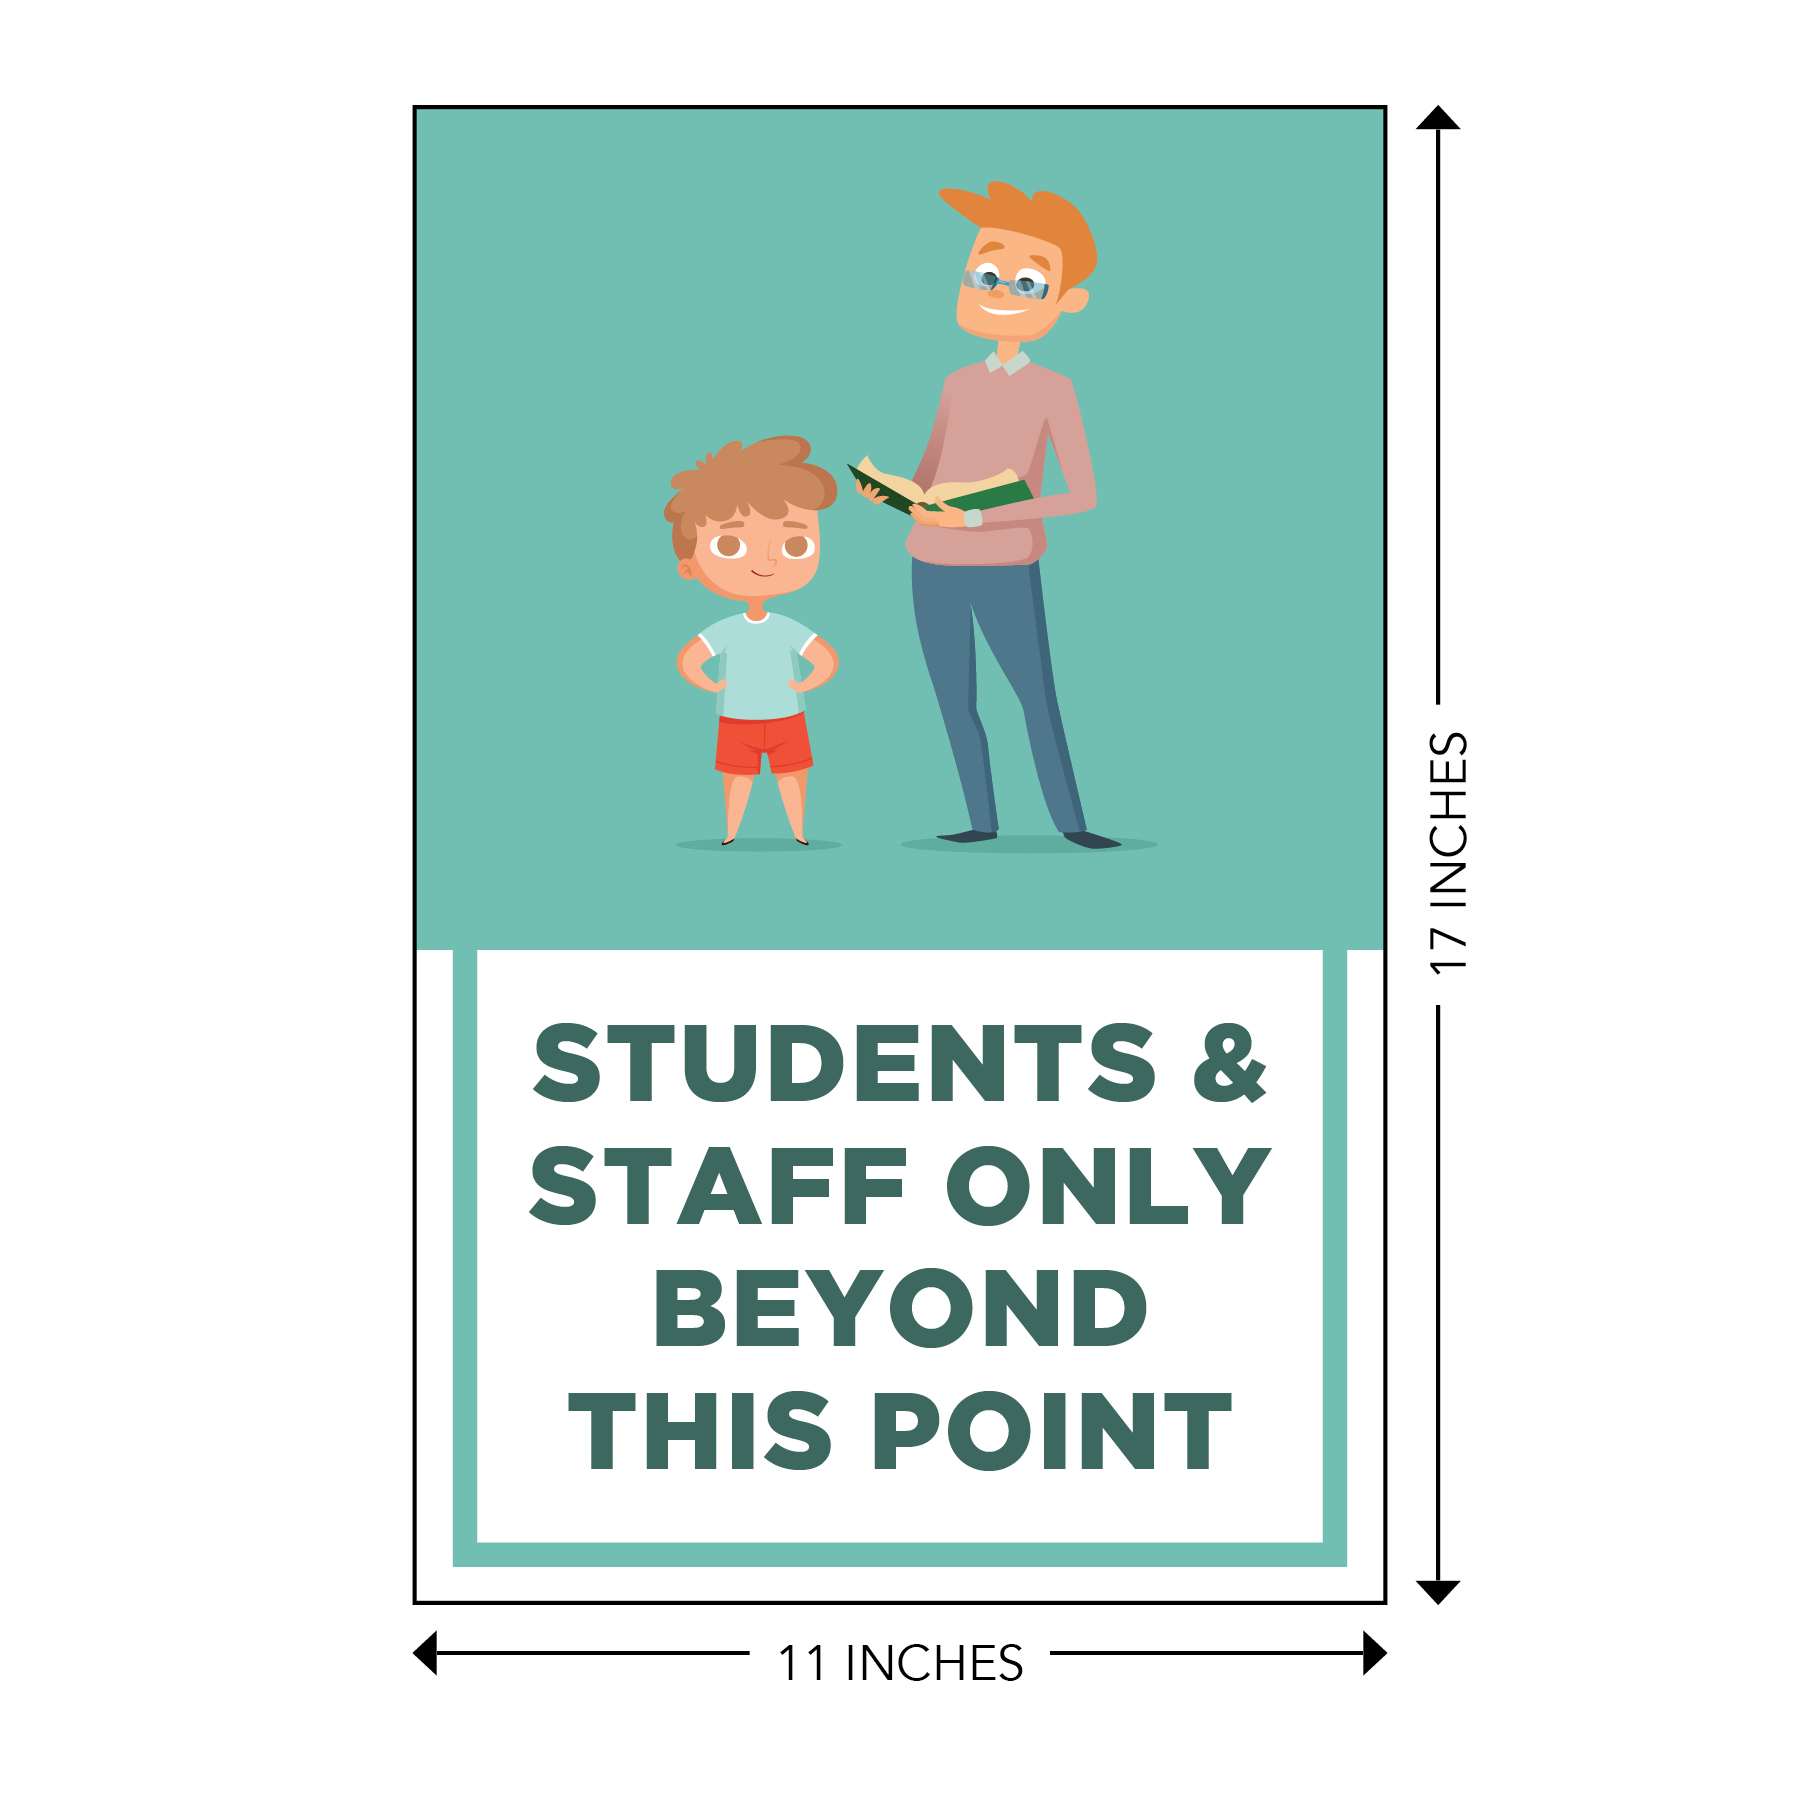 COVID-19 - School Signage - Students & Staff Beyond This Point (ELEM-BEYOND-POSTER-LG)